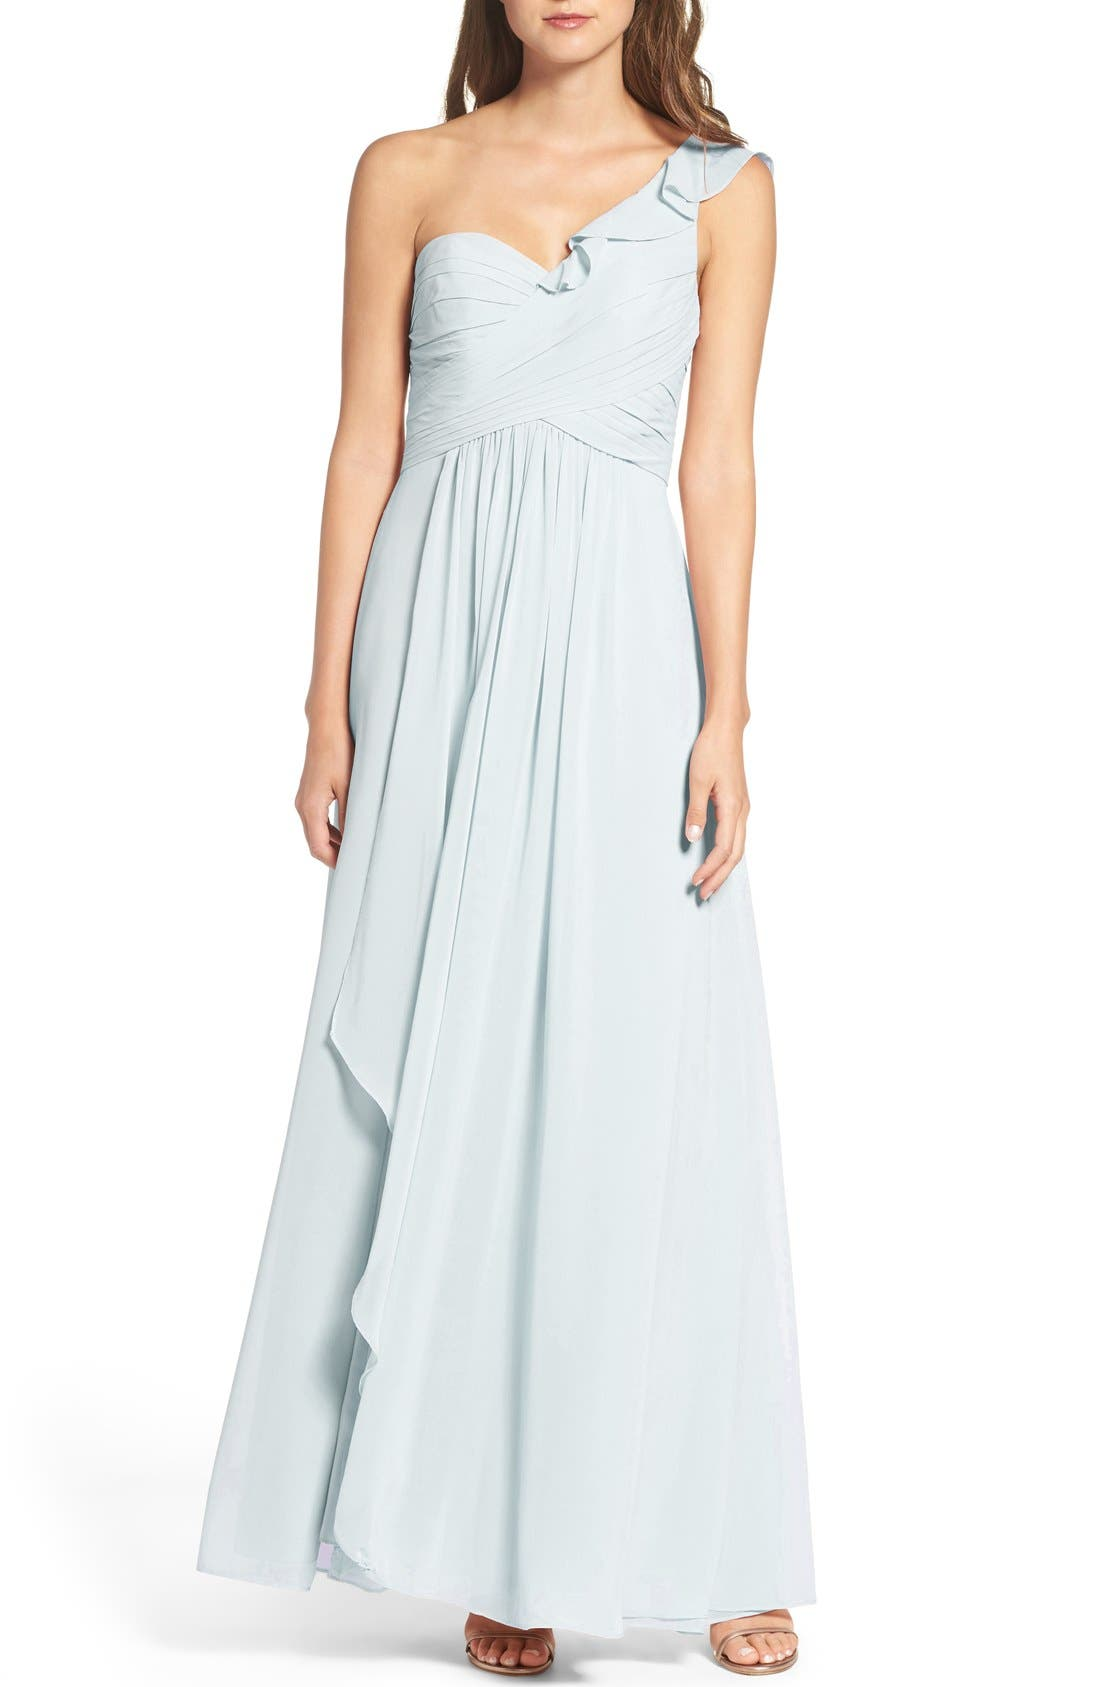 WTOO One-Shoulder Chiffon Dress